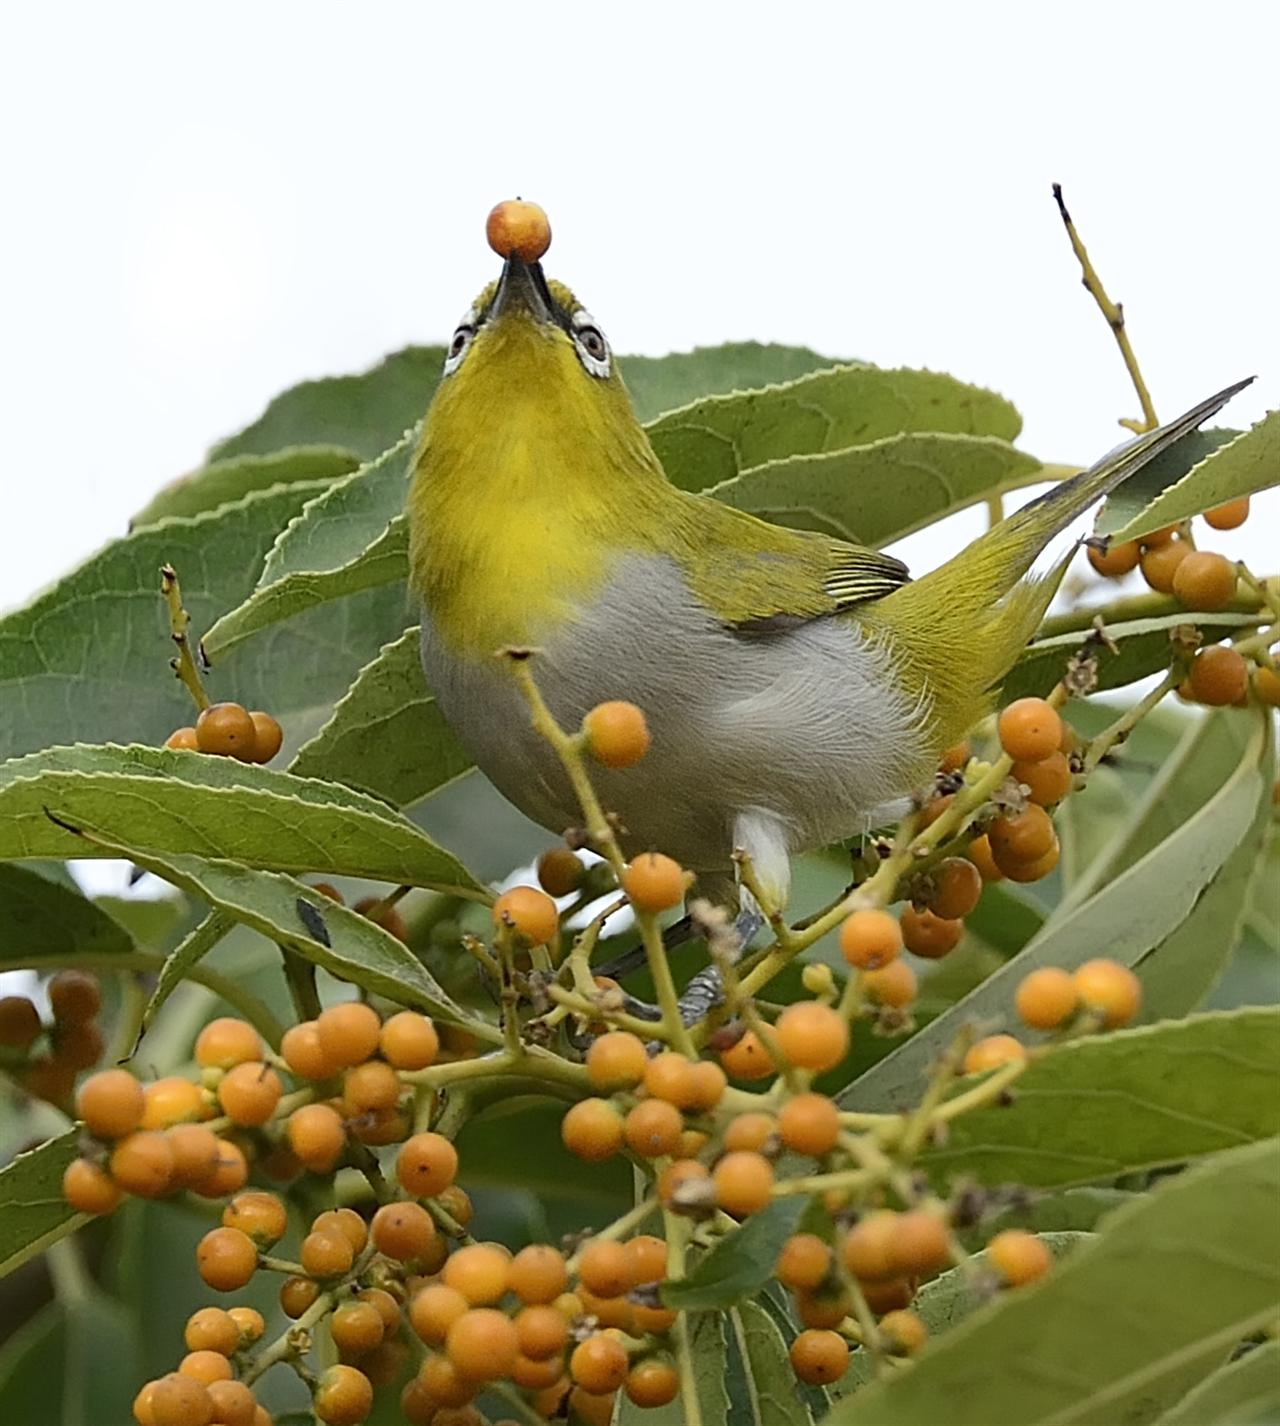 They are common in the President's Estate and can be seen in large flocks on smaller to medium sized trees.